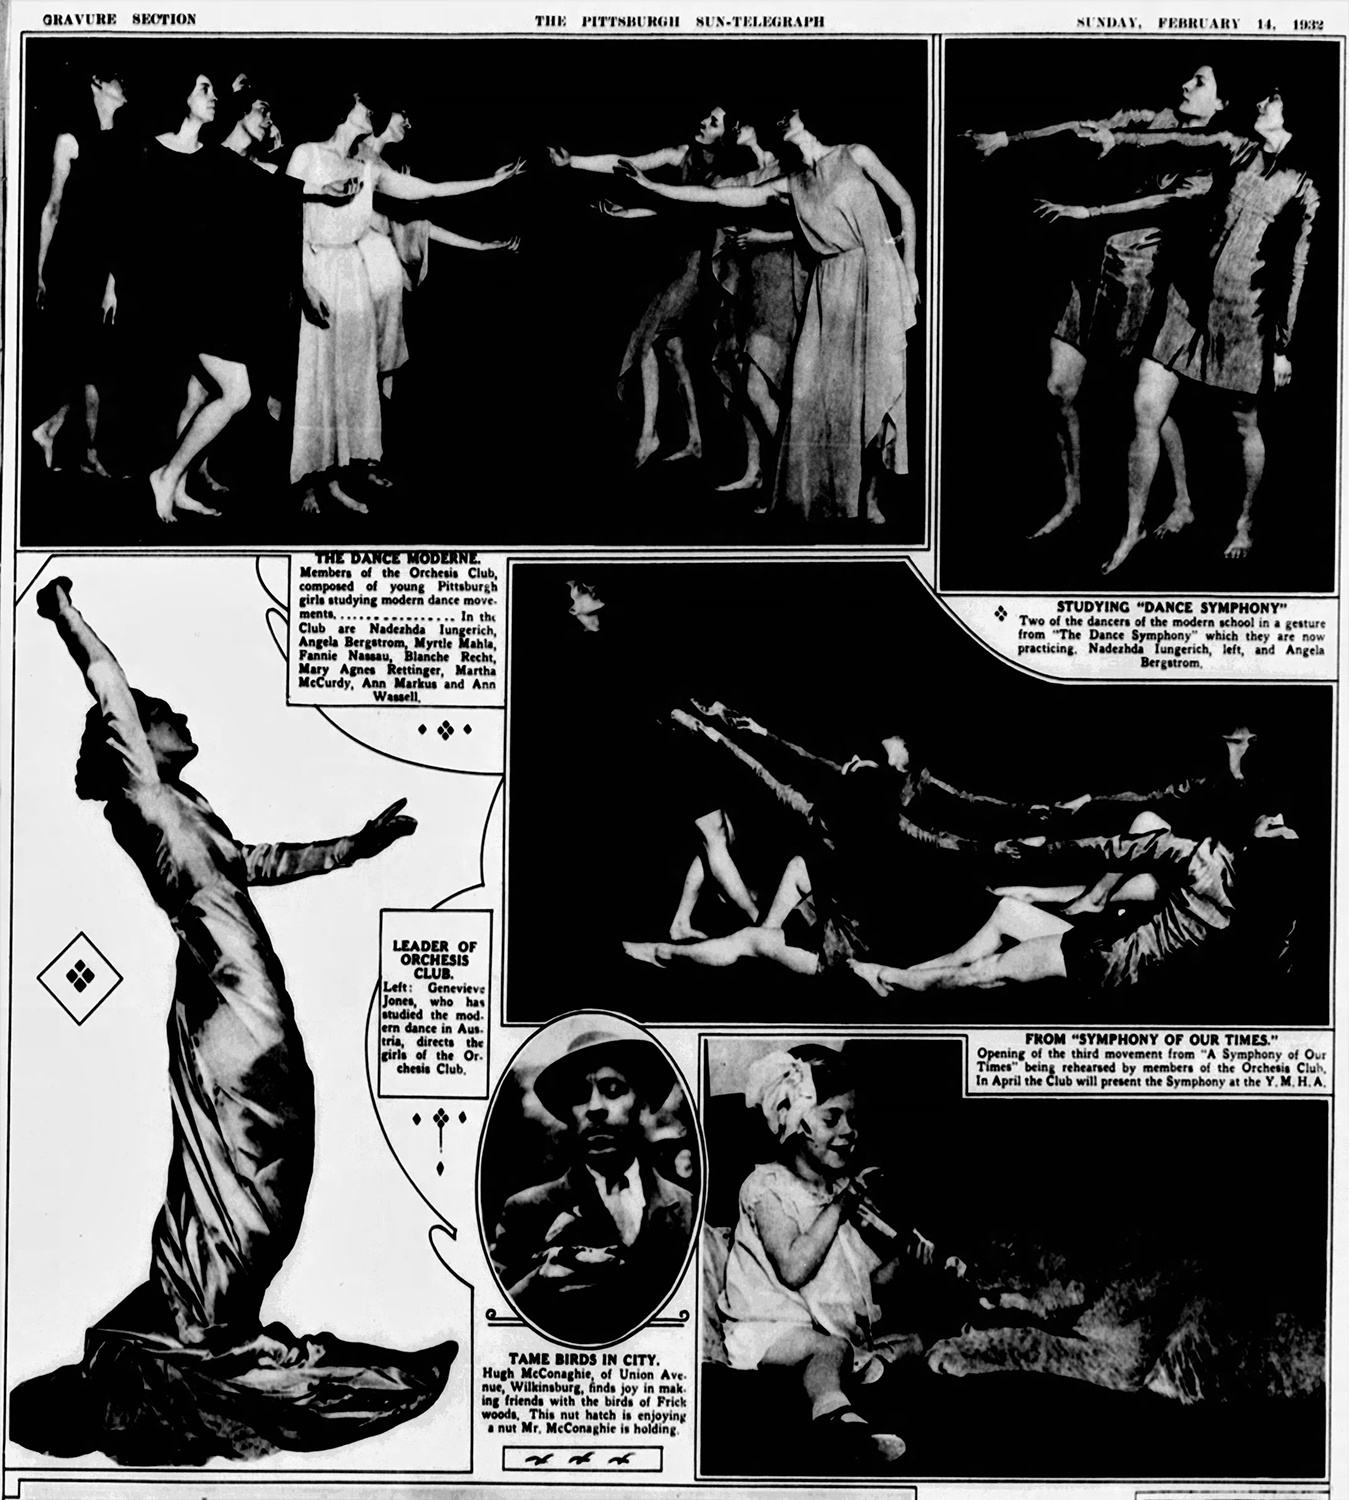 This photo spread from 1932 featured multiple images of the members of Orchesis practicing modern dance. Pittsburgh Sun-Telegraph, February 14, 1932.